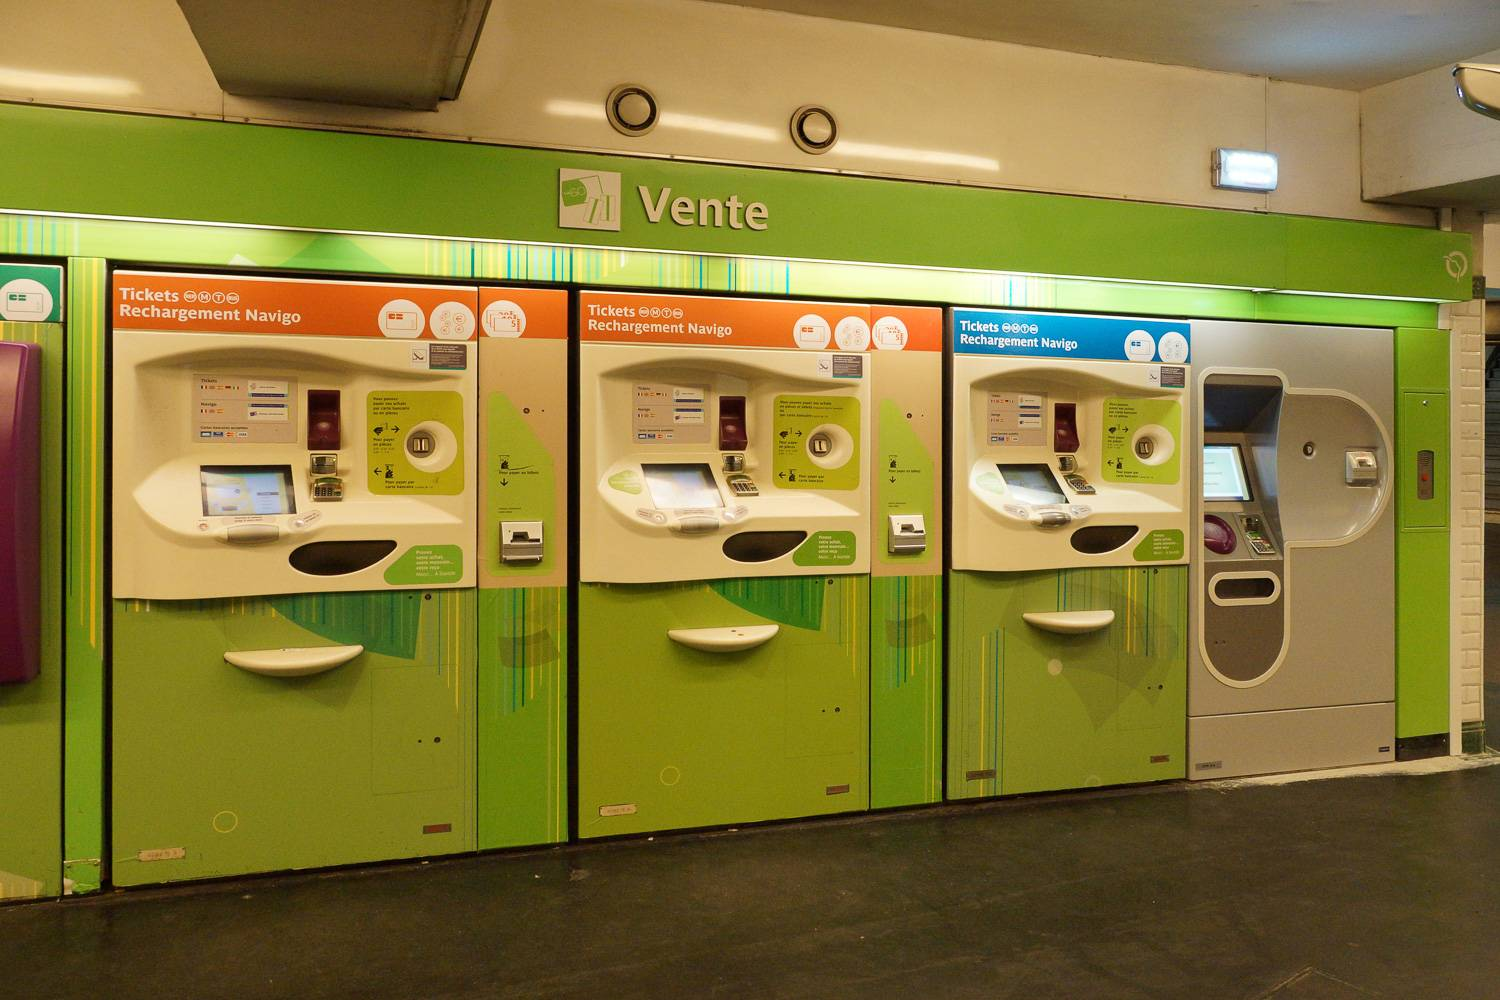 Image of green Navigo ticket machines in Alesia metro station in Paris.